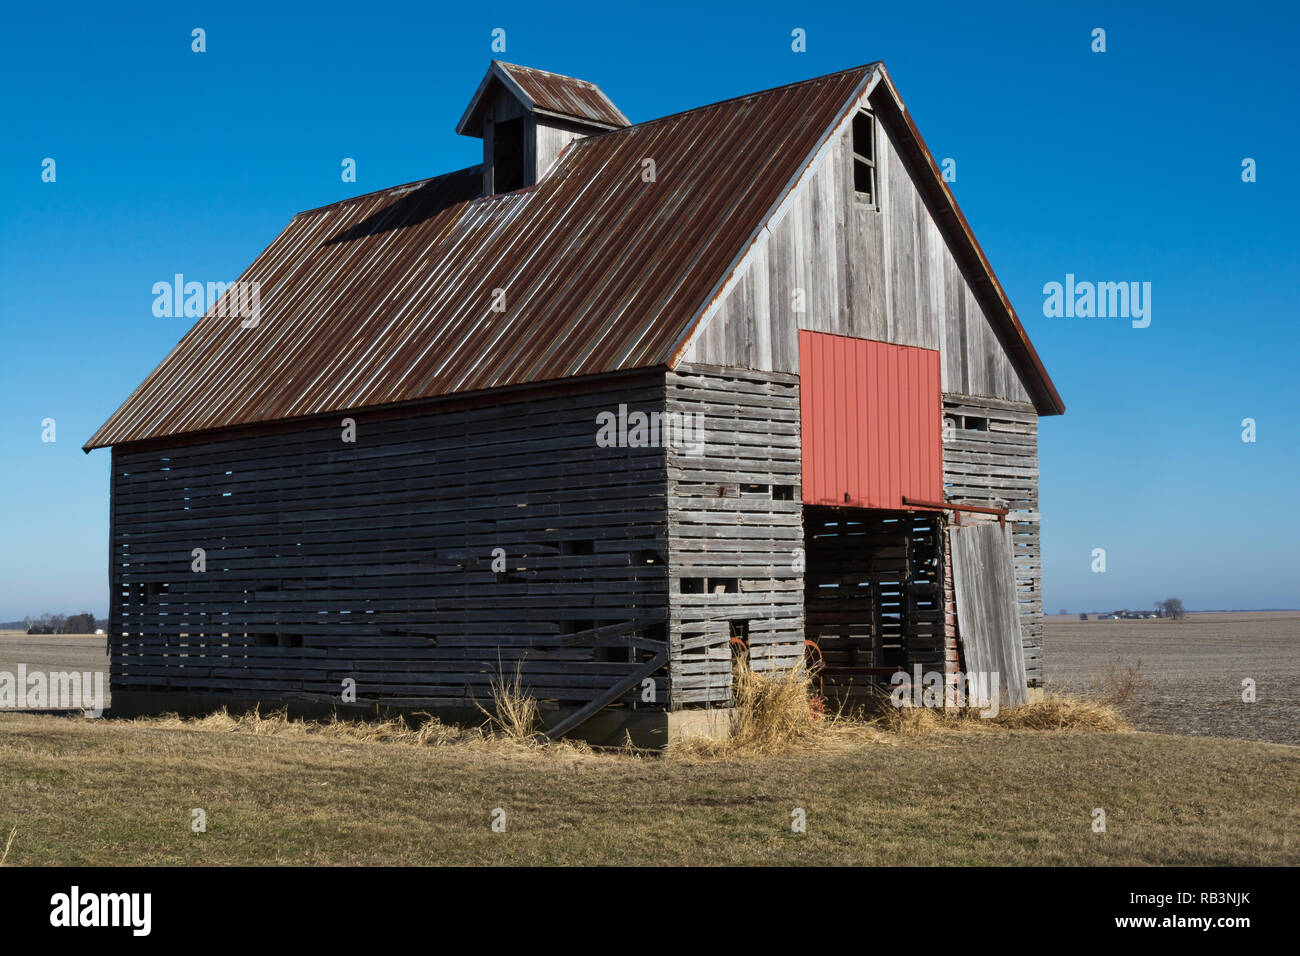 Old wooden barn in the rural open farmland.  Illinois, USA Stock Photo